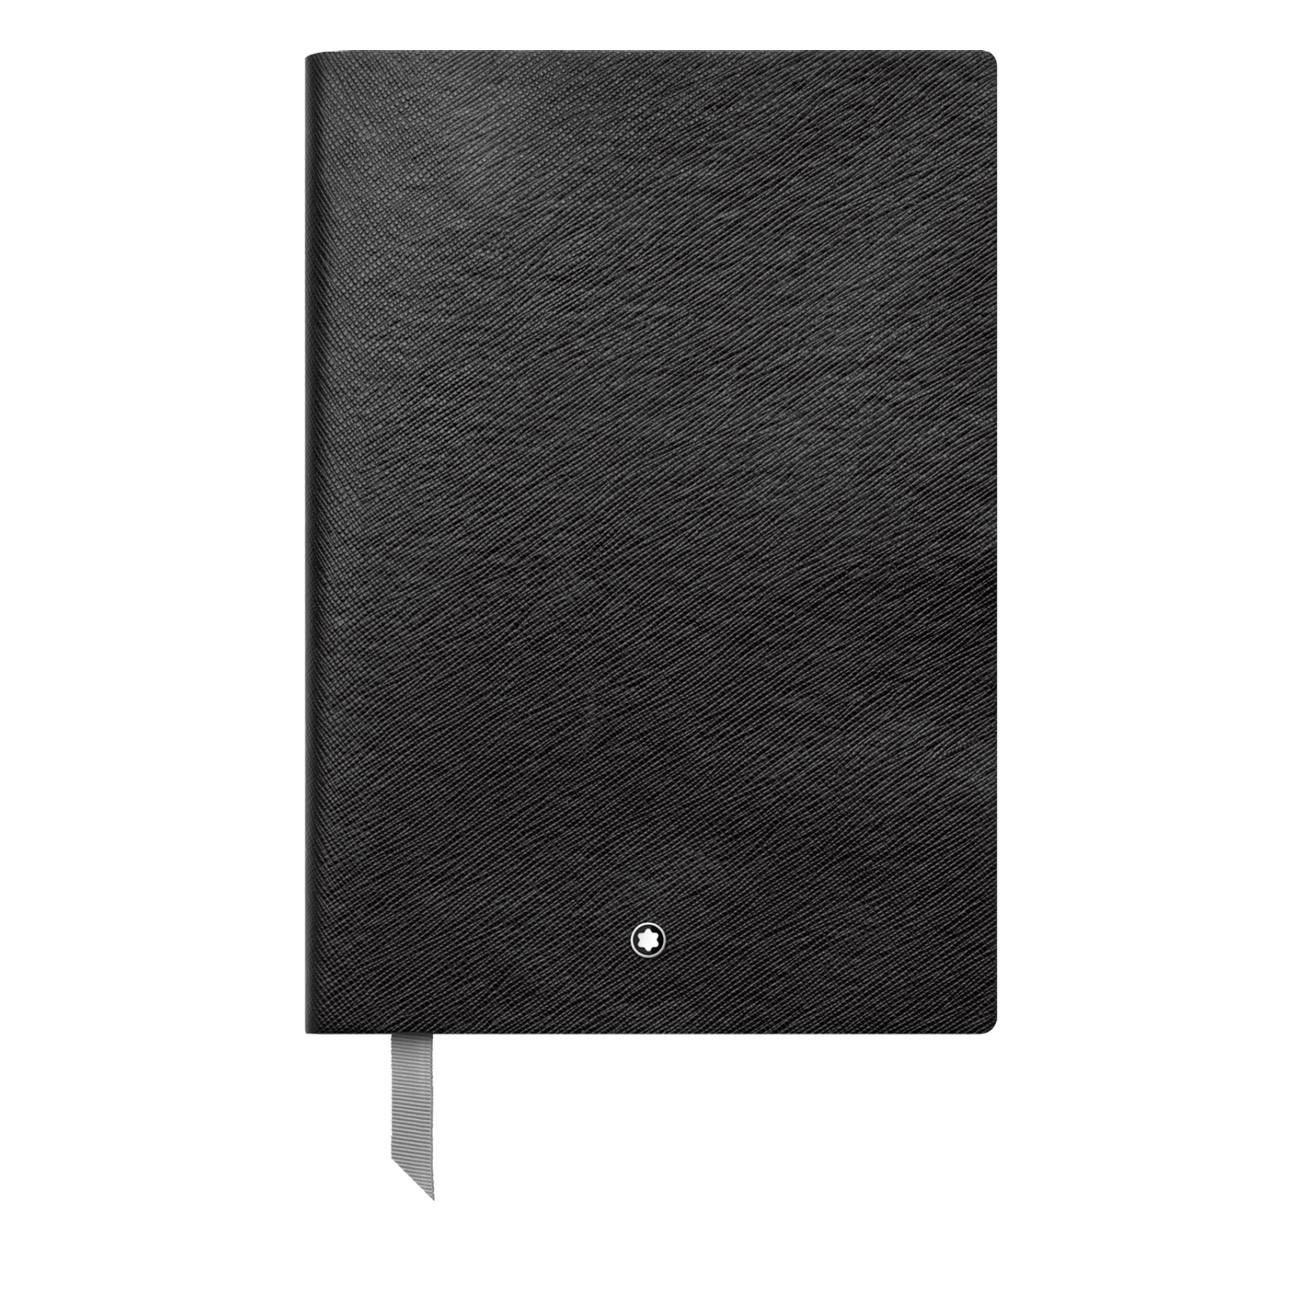 NOTEBOOK BLACK SQUARED - 96 SHEETS